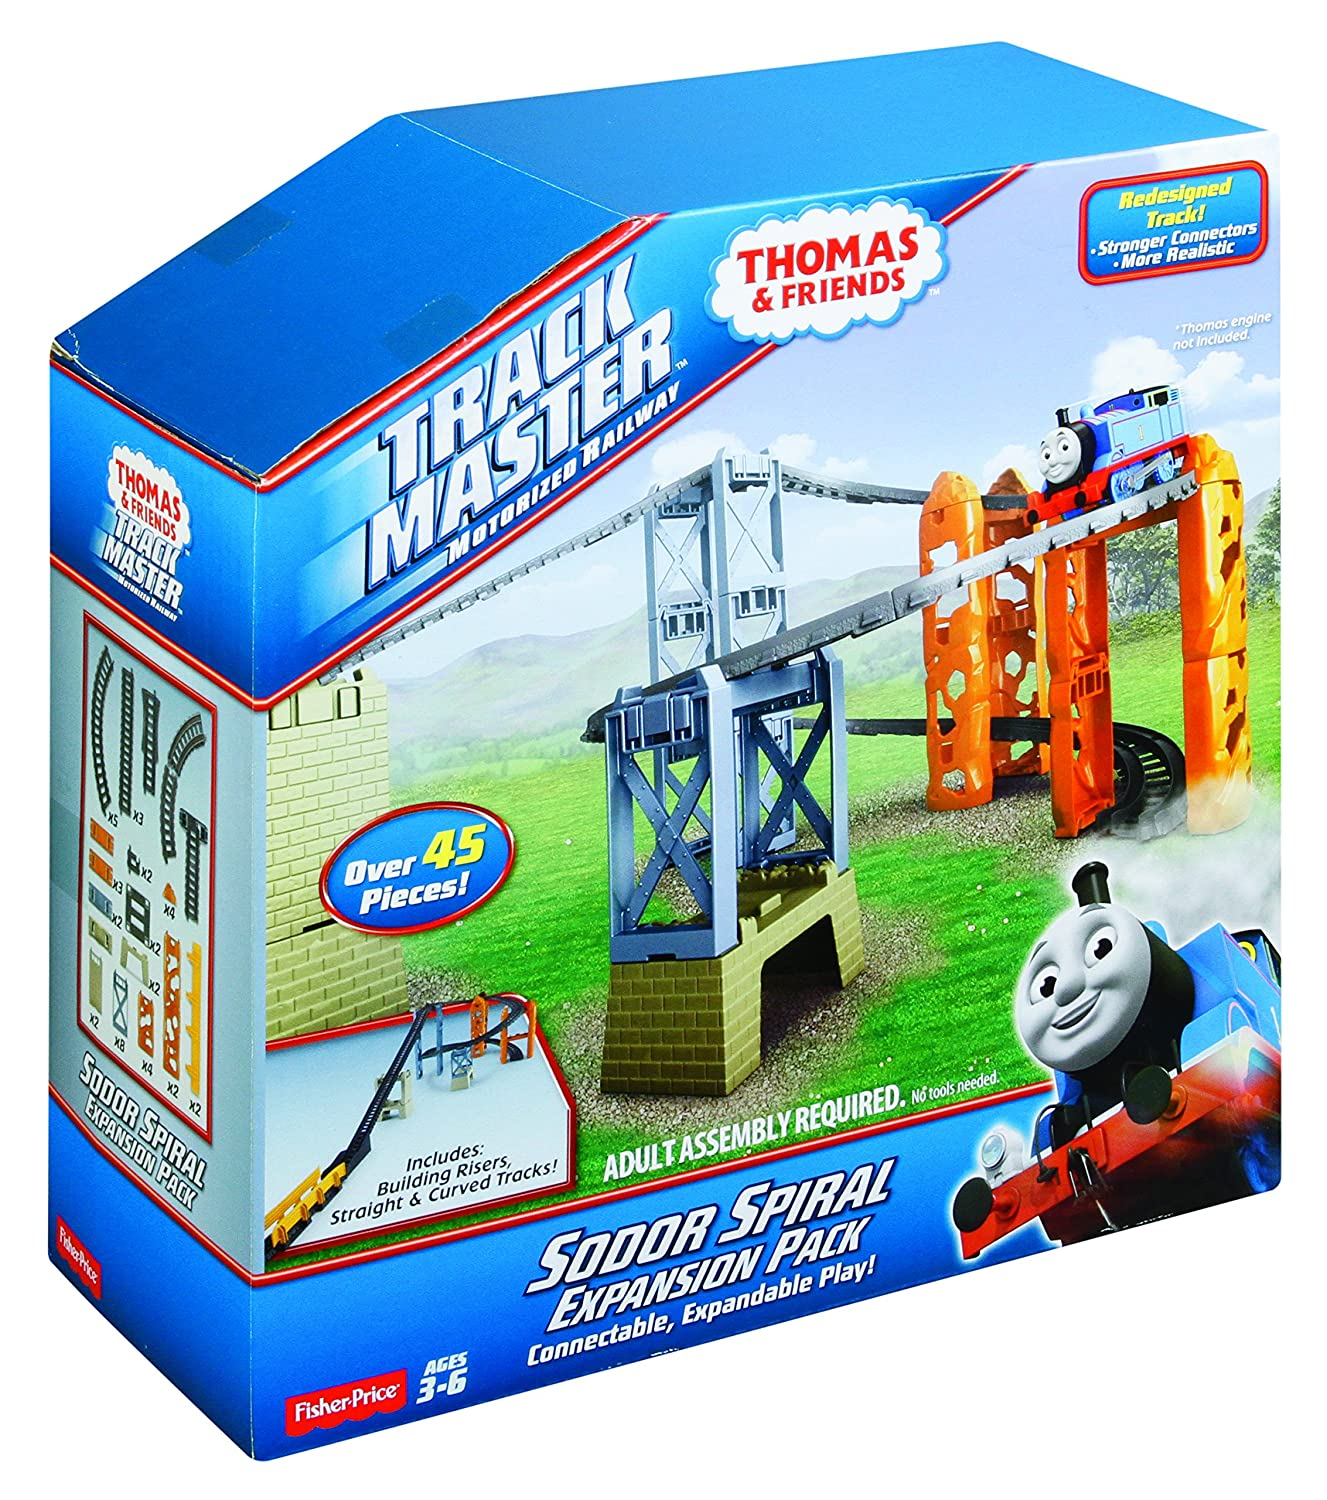 Fisher price thomas amp friends trackmaster treasure chase set new - Amazon Com Fisher Price Thomas Friends Trackmaster Sodor Spiral Expansion Pack Toys Games